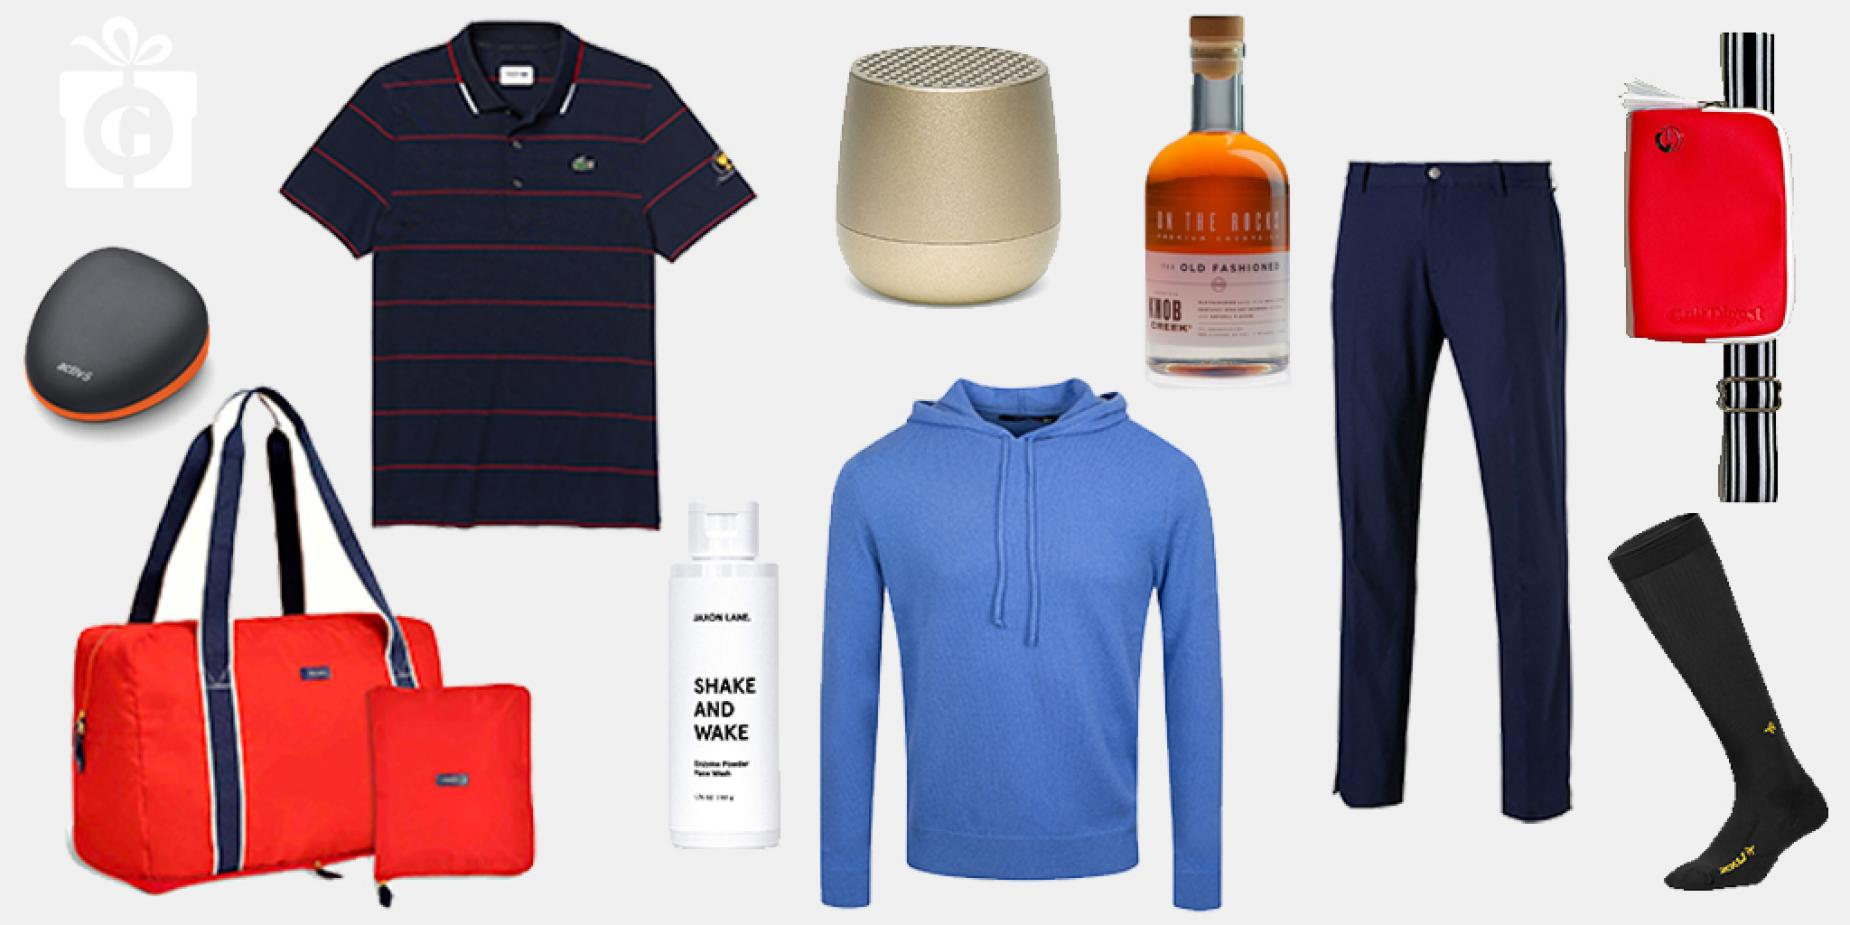 Golf Digest Holiday Gift Guide Travel Promo.jpg